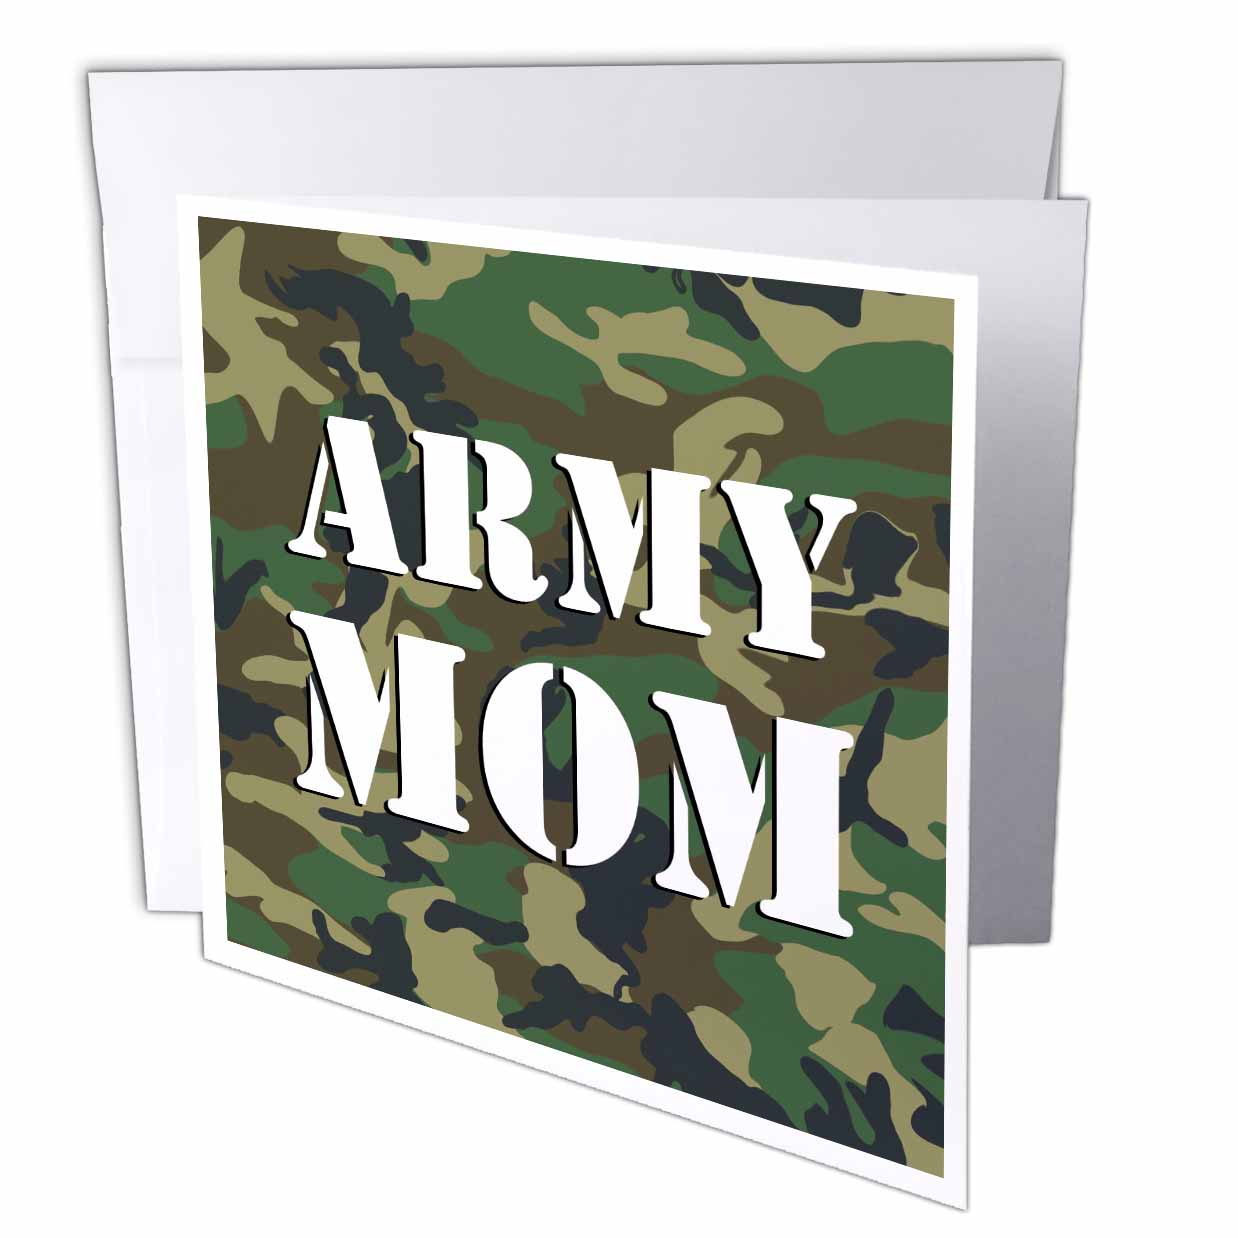 3dRose Army Mom Green Camouflage , Greeting Cards, 6 x 6 inches, set of 12